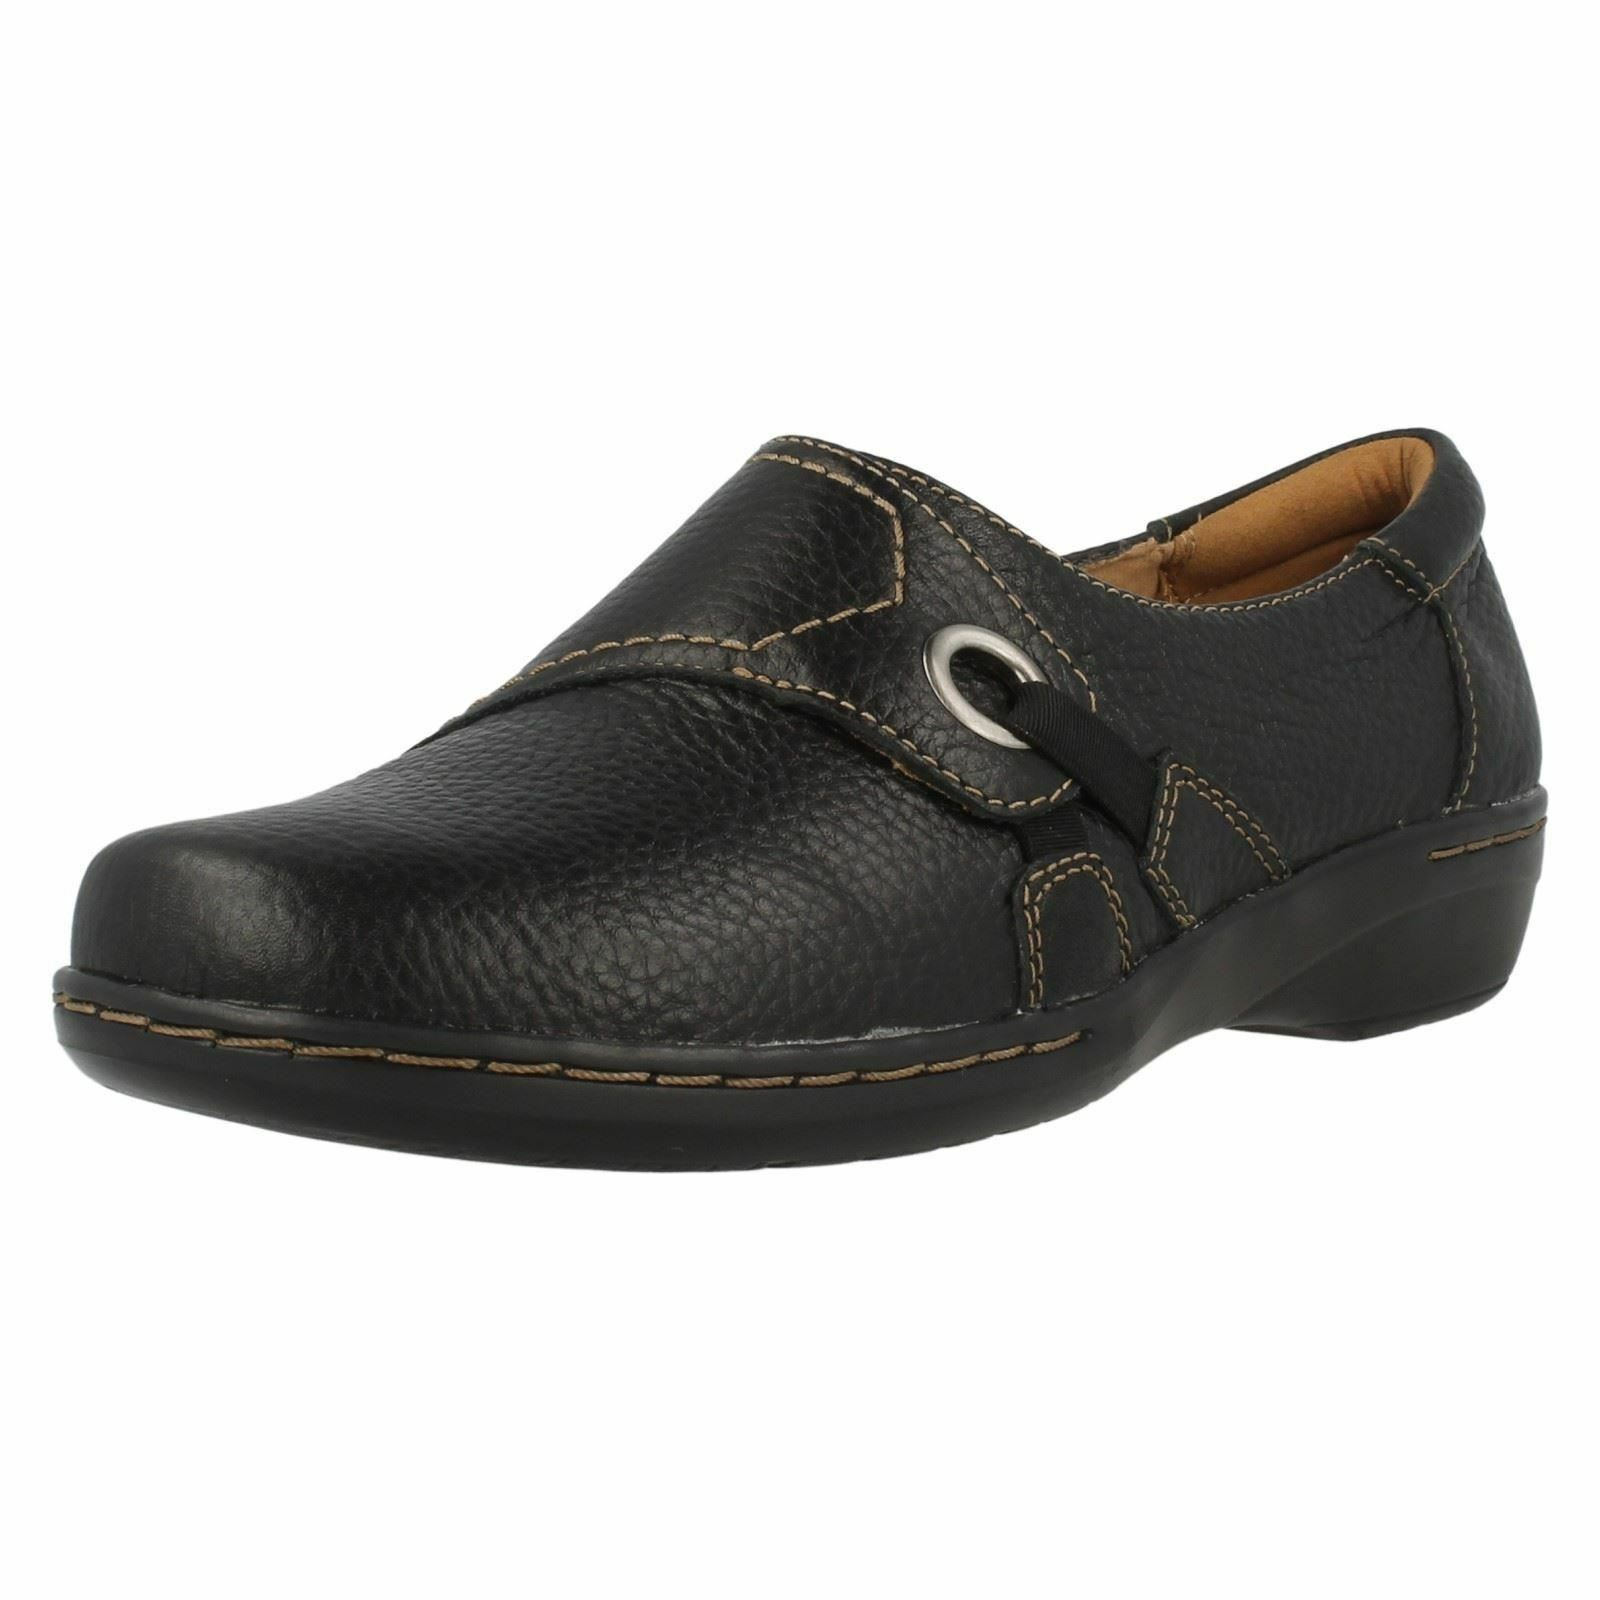 Clarks 'Evianna 'Evianna 'Evianna Boa' Ladies Black Tumbled Leather Slip On Comfortable shoes bdd8c0